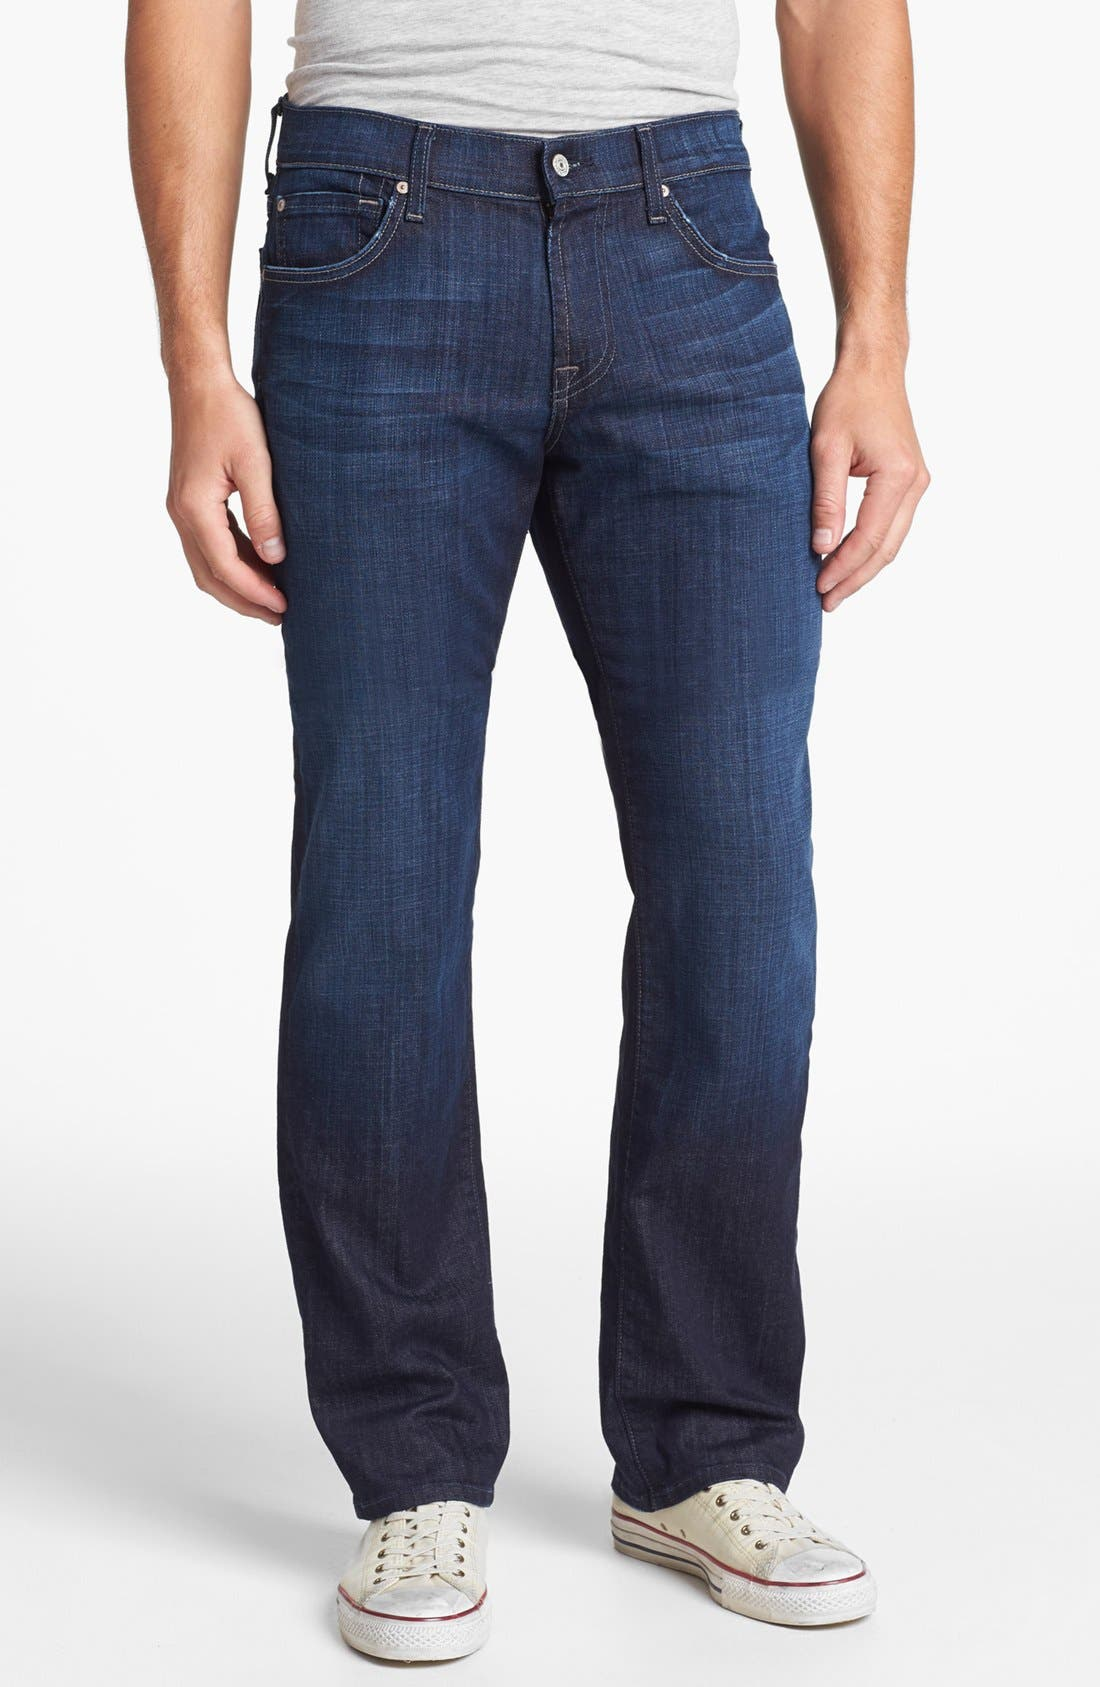 Alternate Image 1 Selected - 7 For All Mankind® 'Austyn' Relaxed Straight Leg Jeans (Los Angeles Dark)